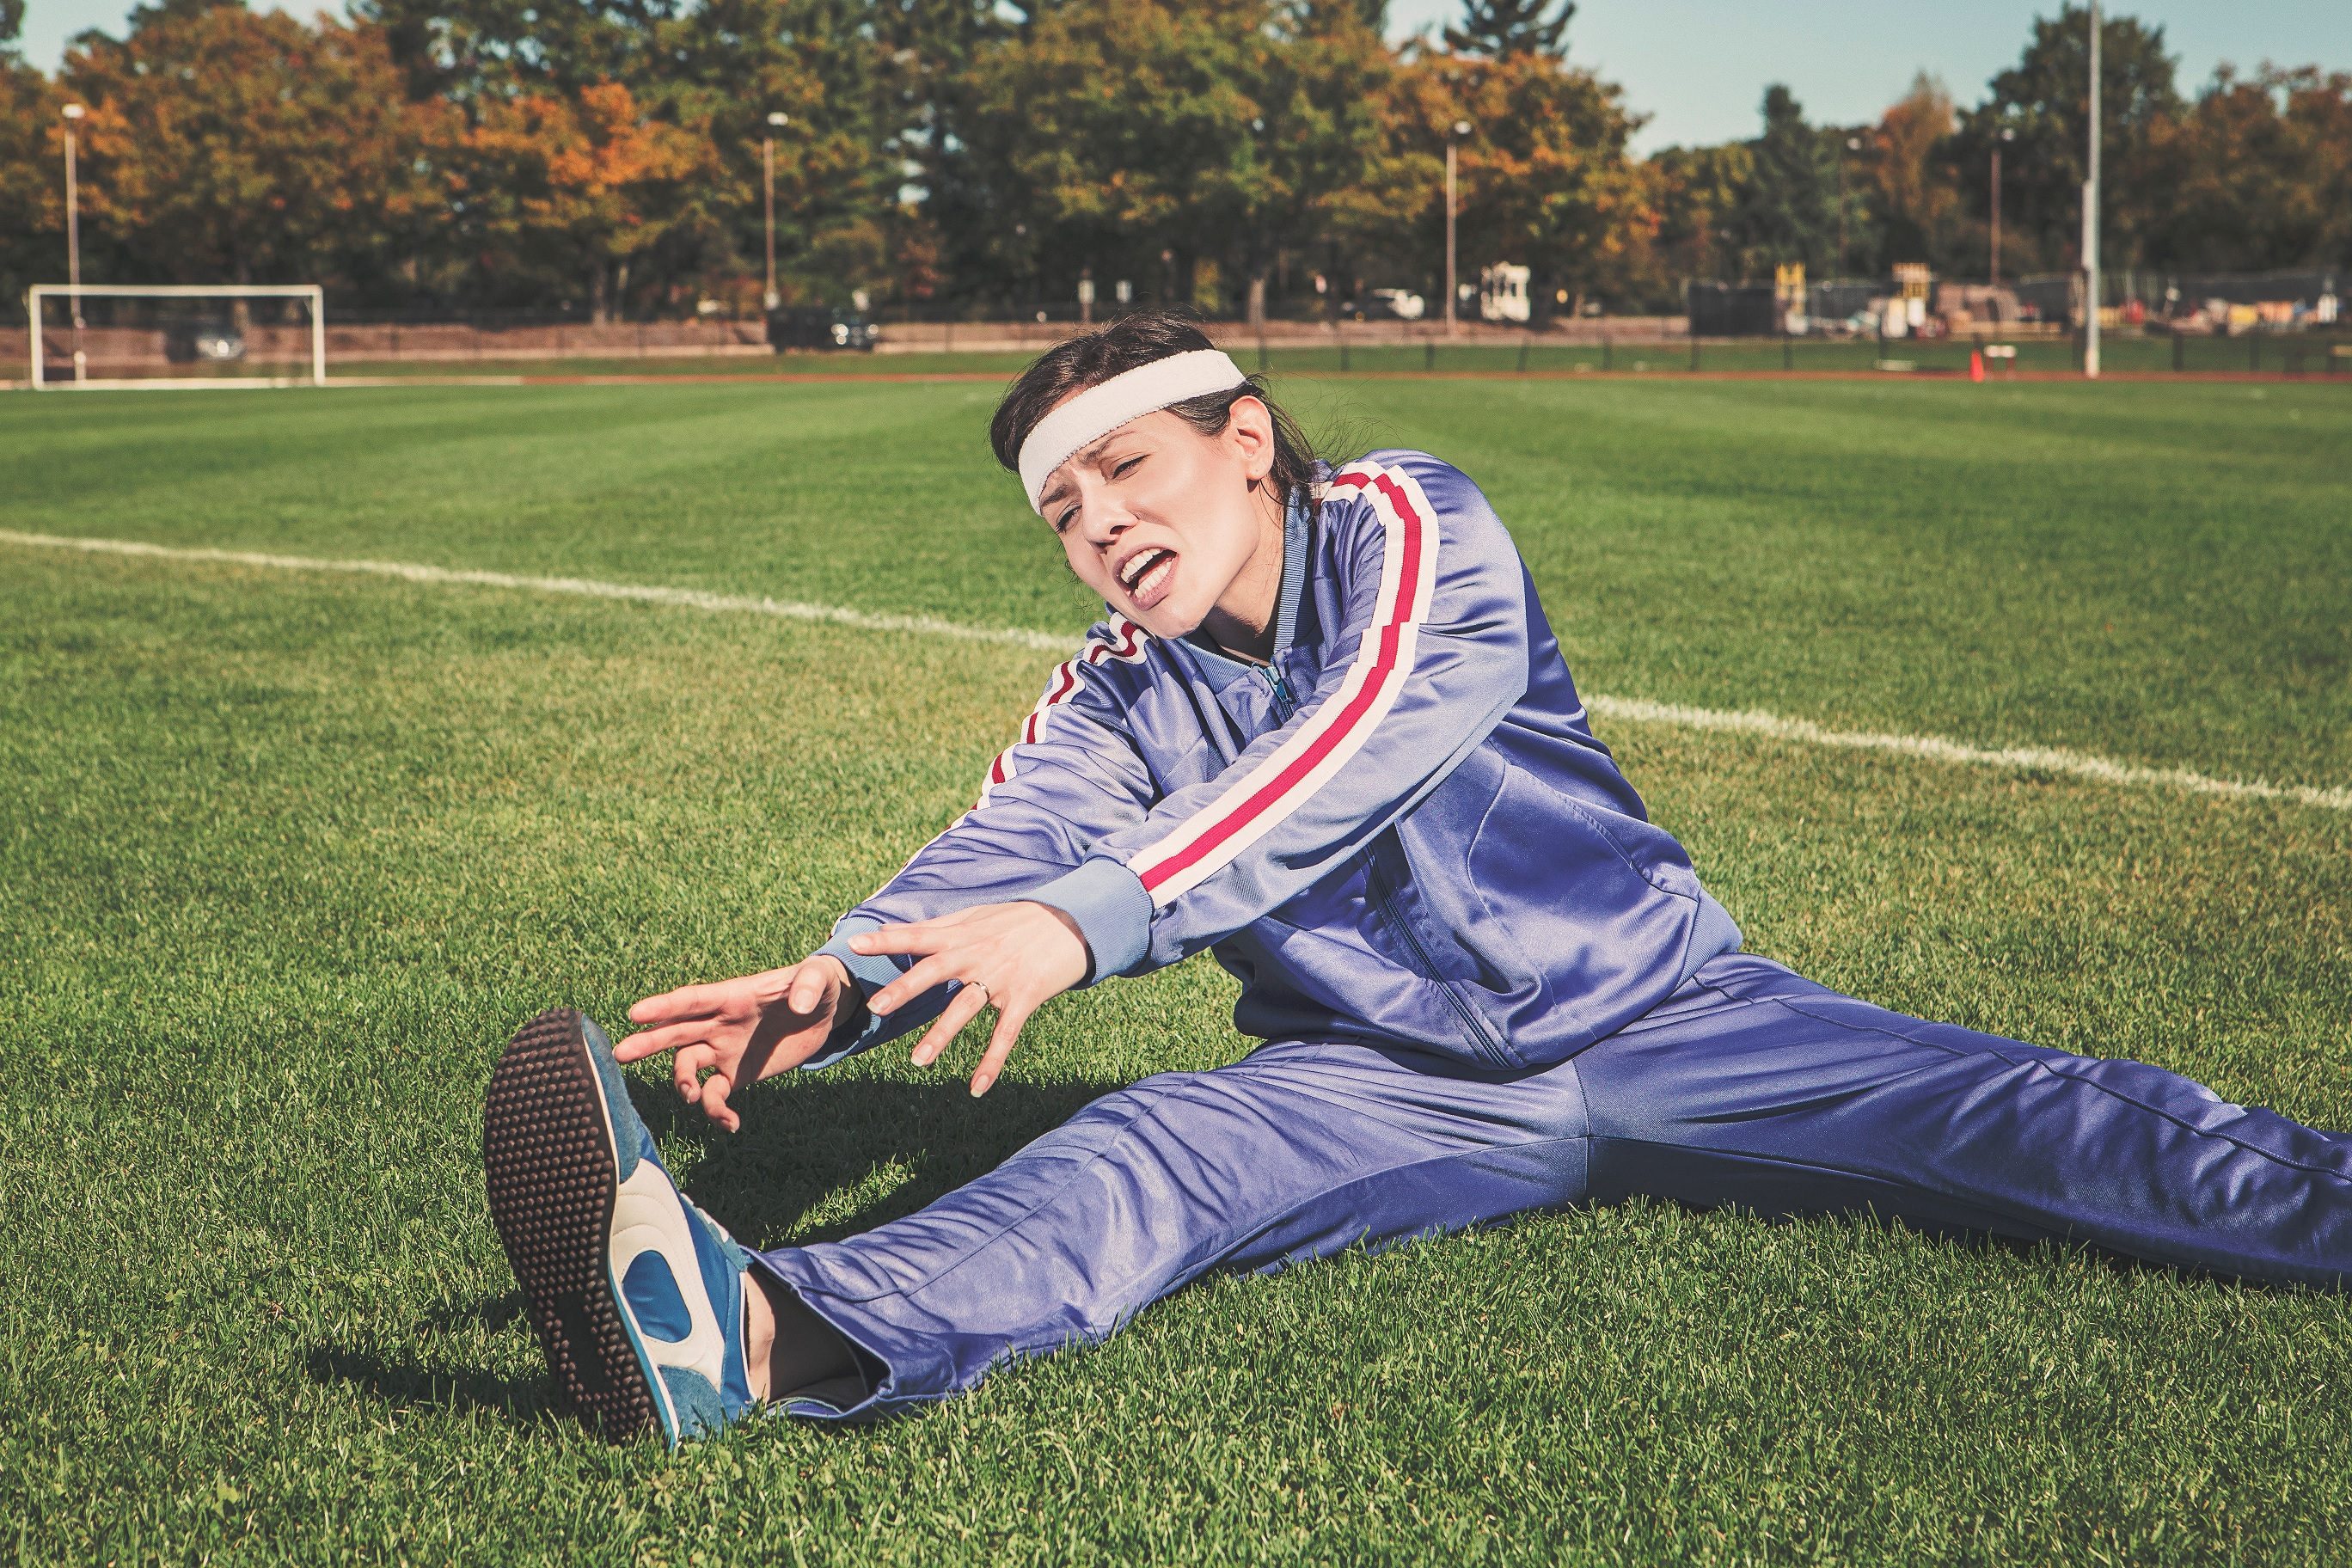 A Few Significant Tips To Avoid Sports Injuries